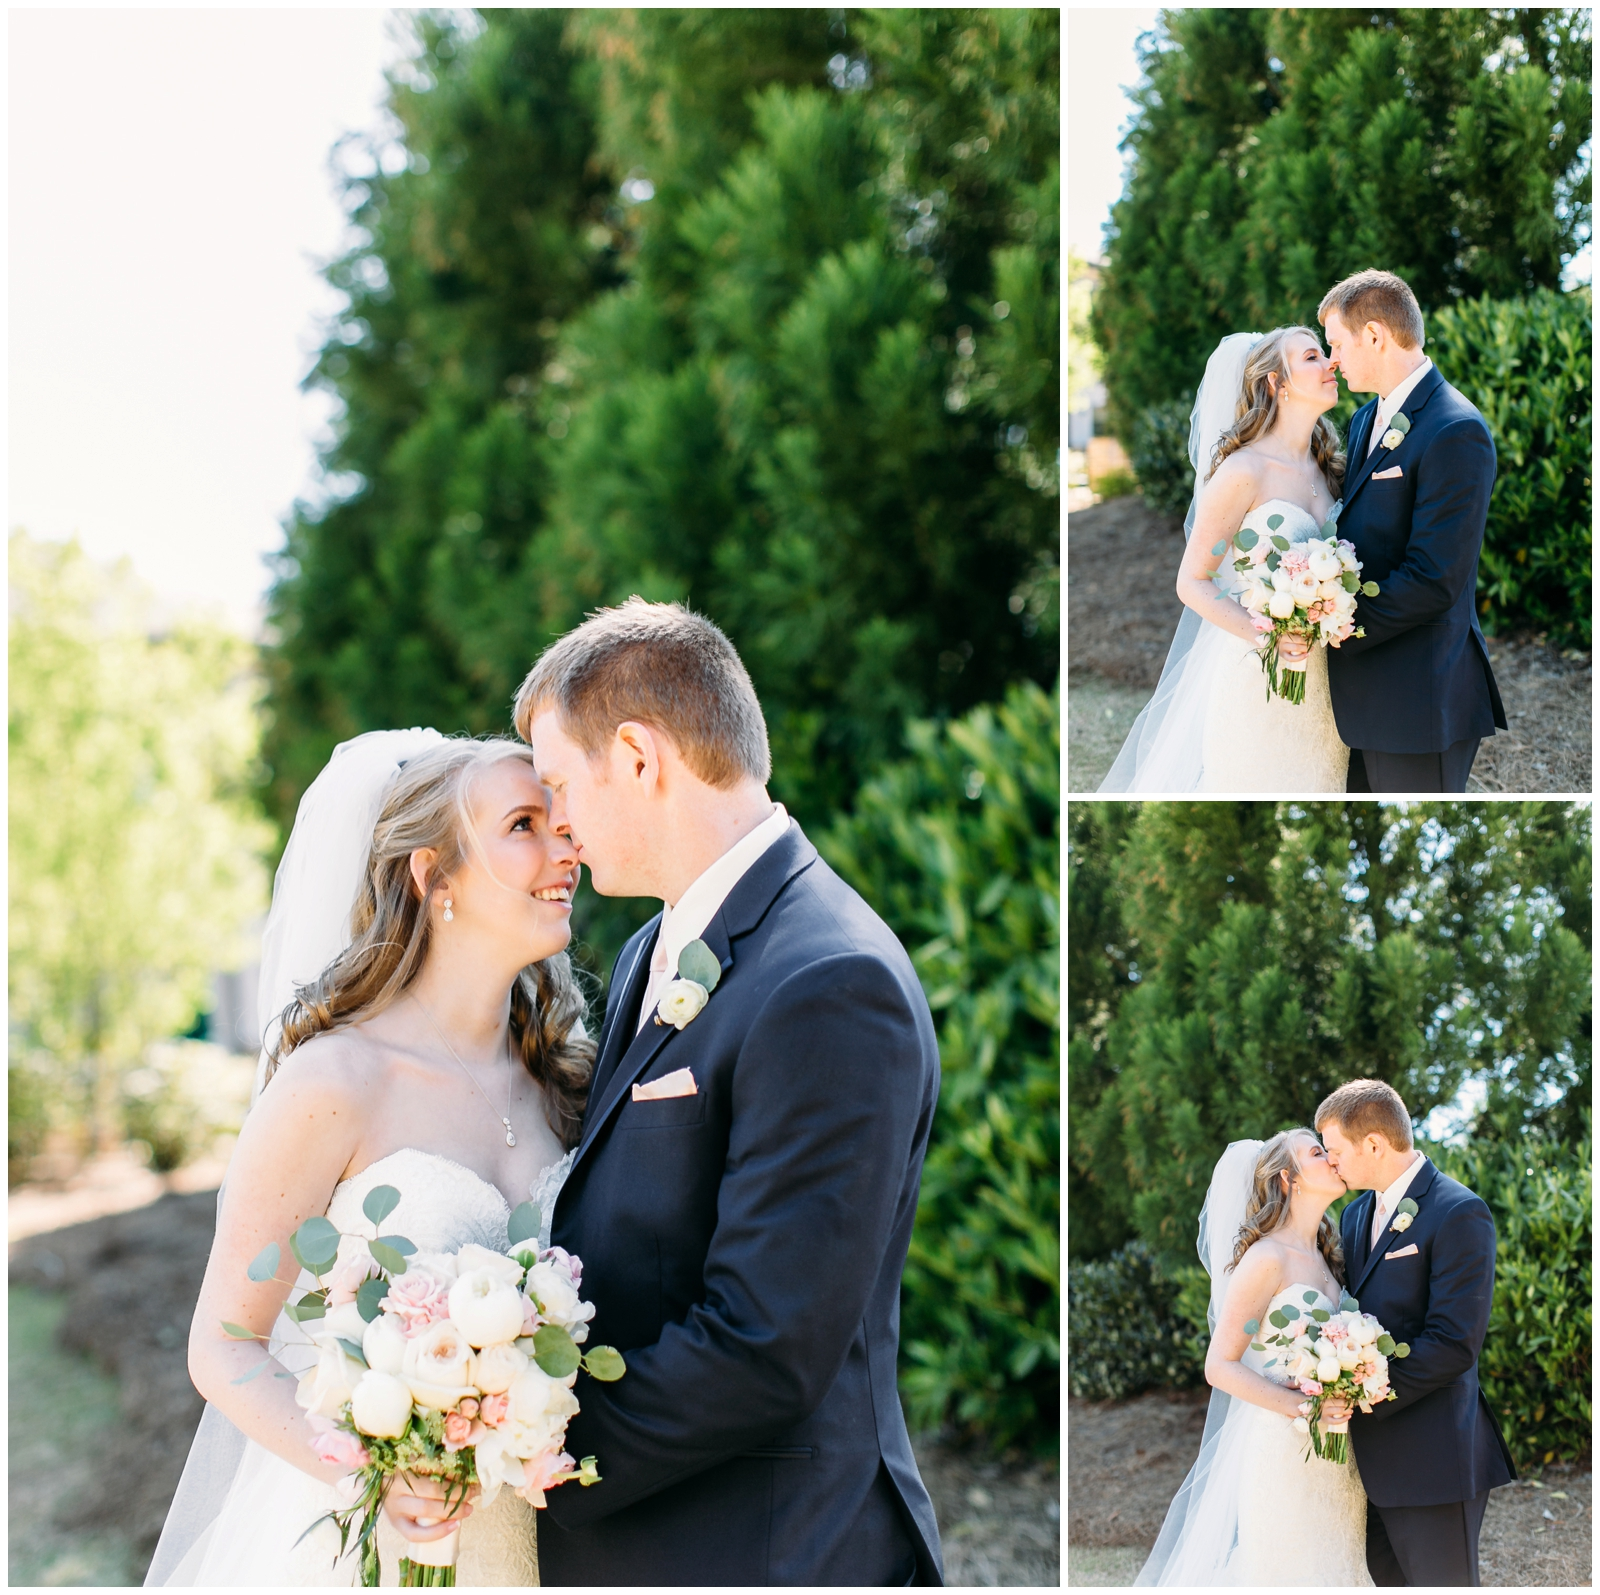 Morgan & Kyle_RoswellWedding_ArdentStory_0009